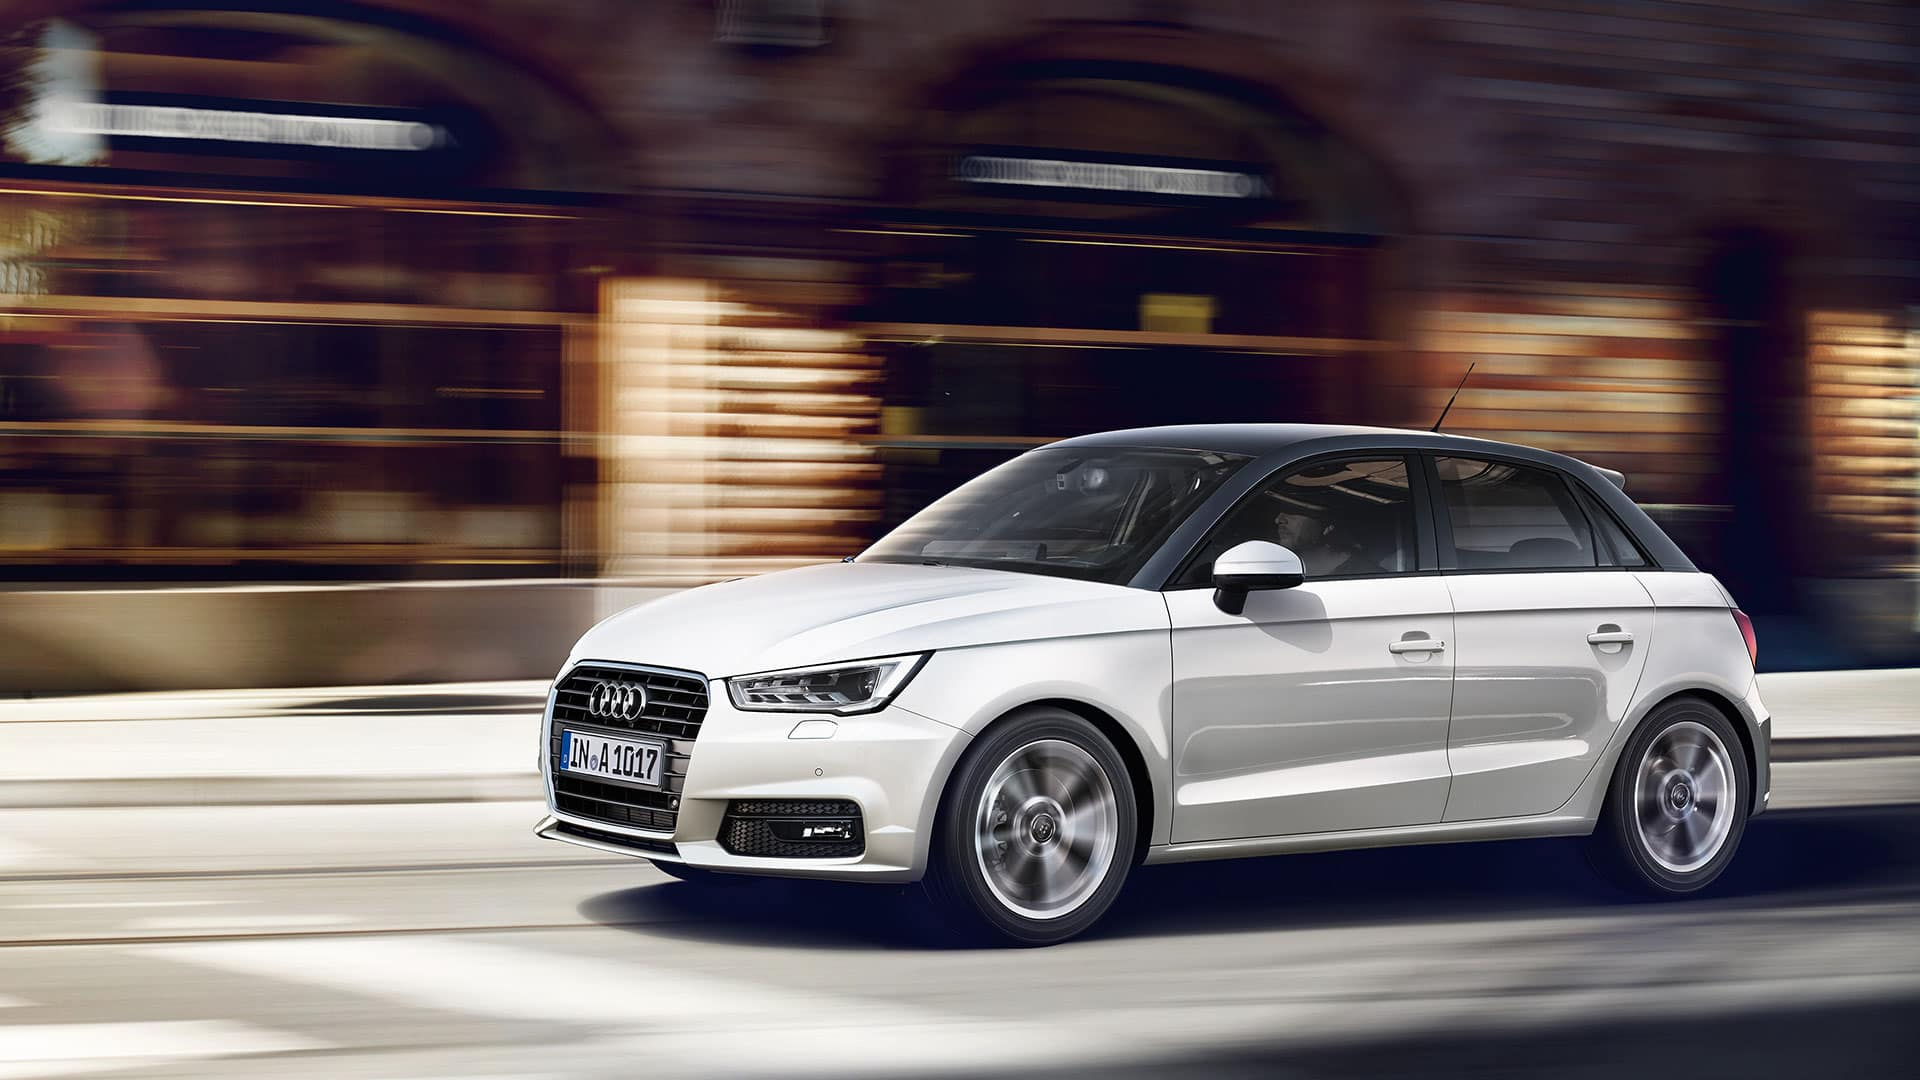 audi a1 sportback compact car audi australia audi australia official website luxury. Black Bedroom Furniture Sets. Home Design Ideas